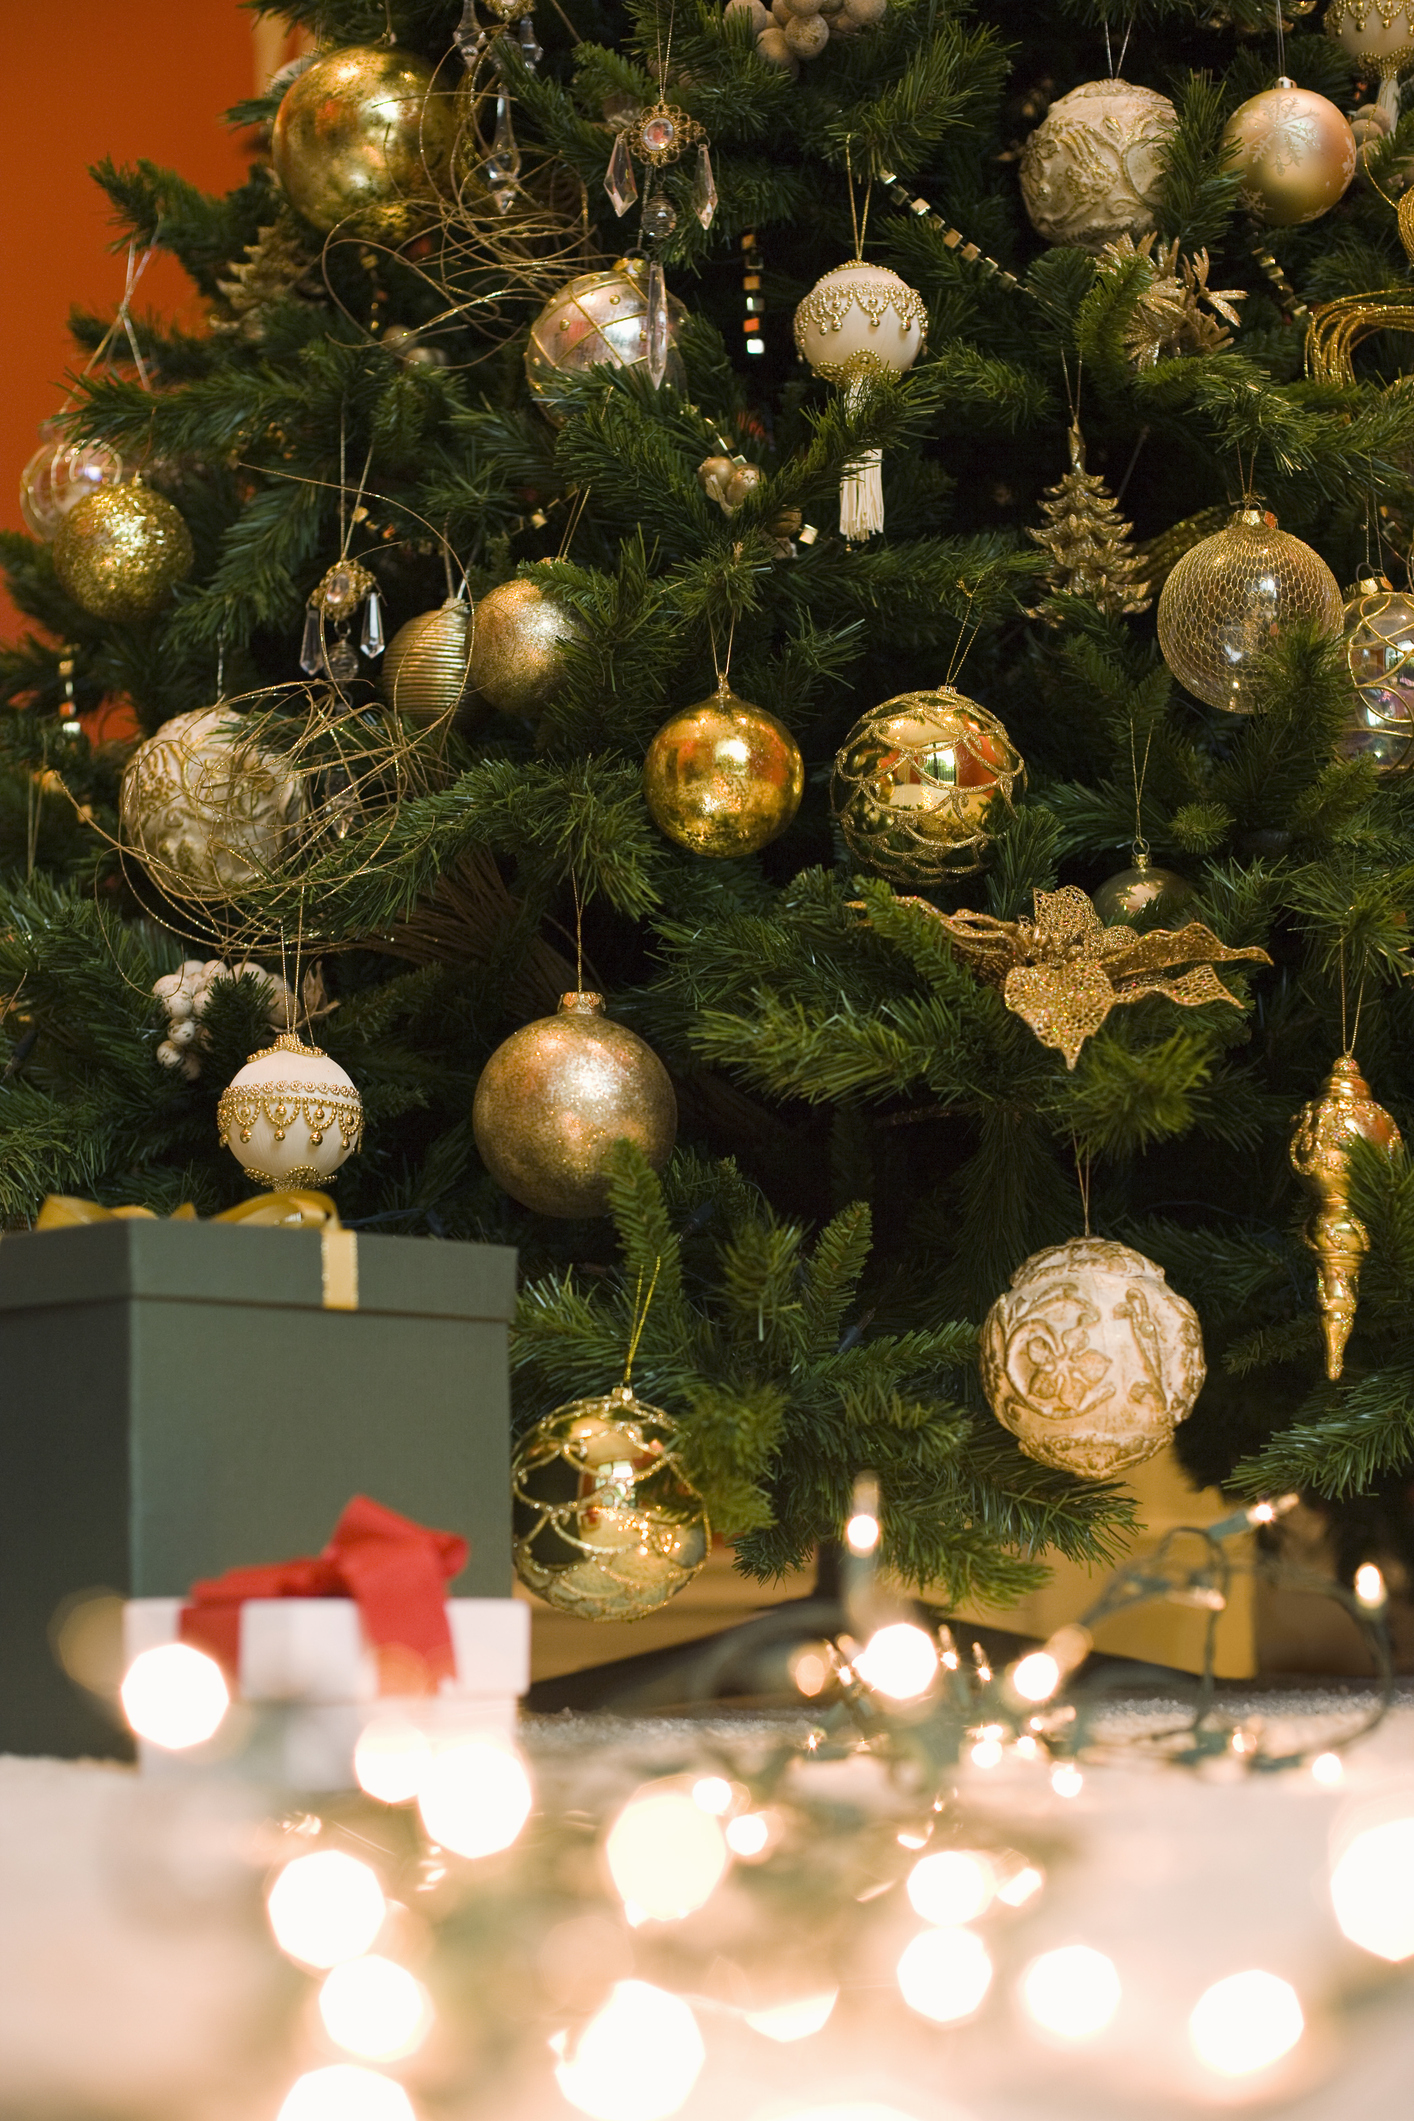 Christmas Tree Care Tips | The Old Farmer's Almanac